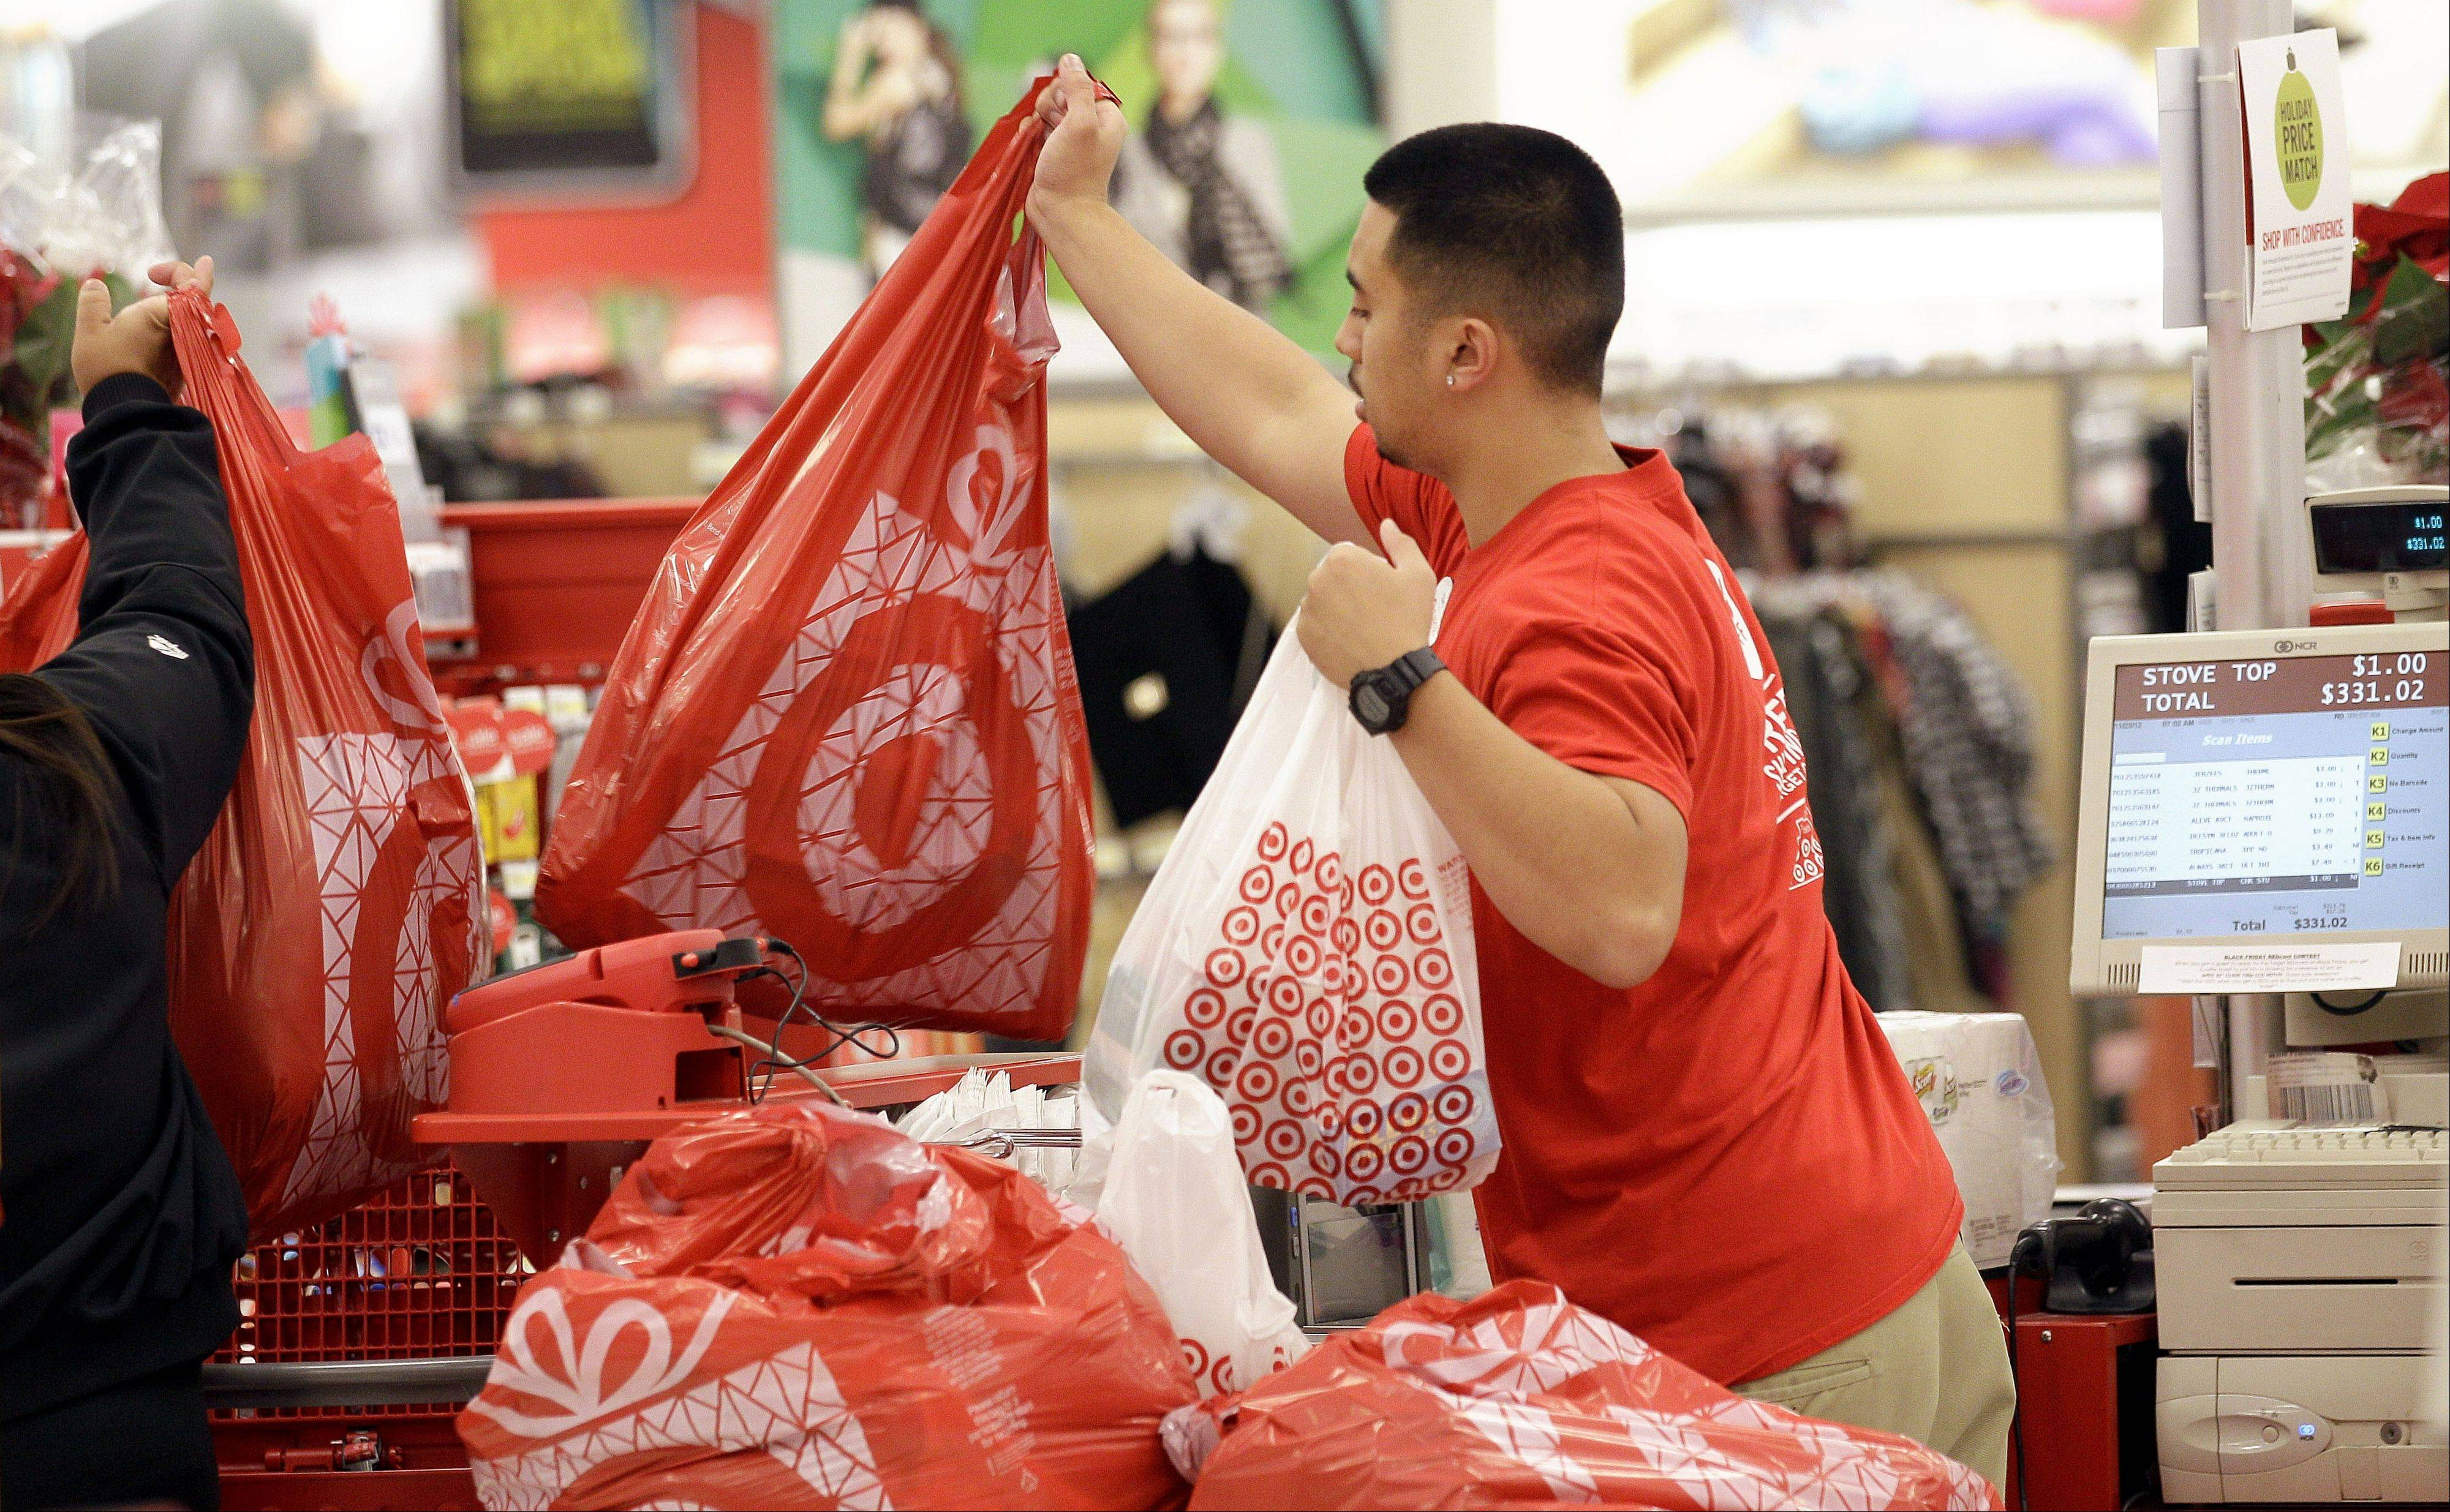 Target's fiscal fourth-quarter net income dipped 2 percent as it dealt with intense competition during the crucial holiday season. But its adjusted results beat analysts' estimates and it forecast first-quarter earnings above Wall Street's view.